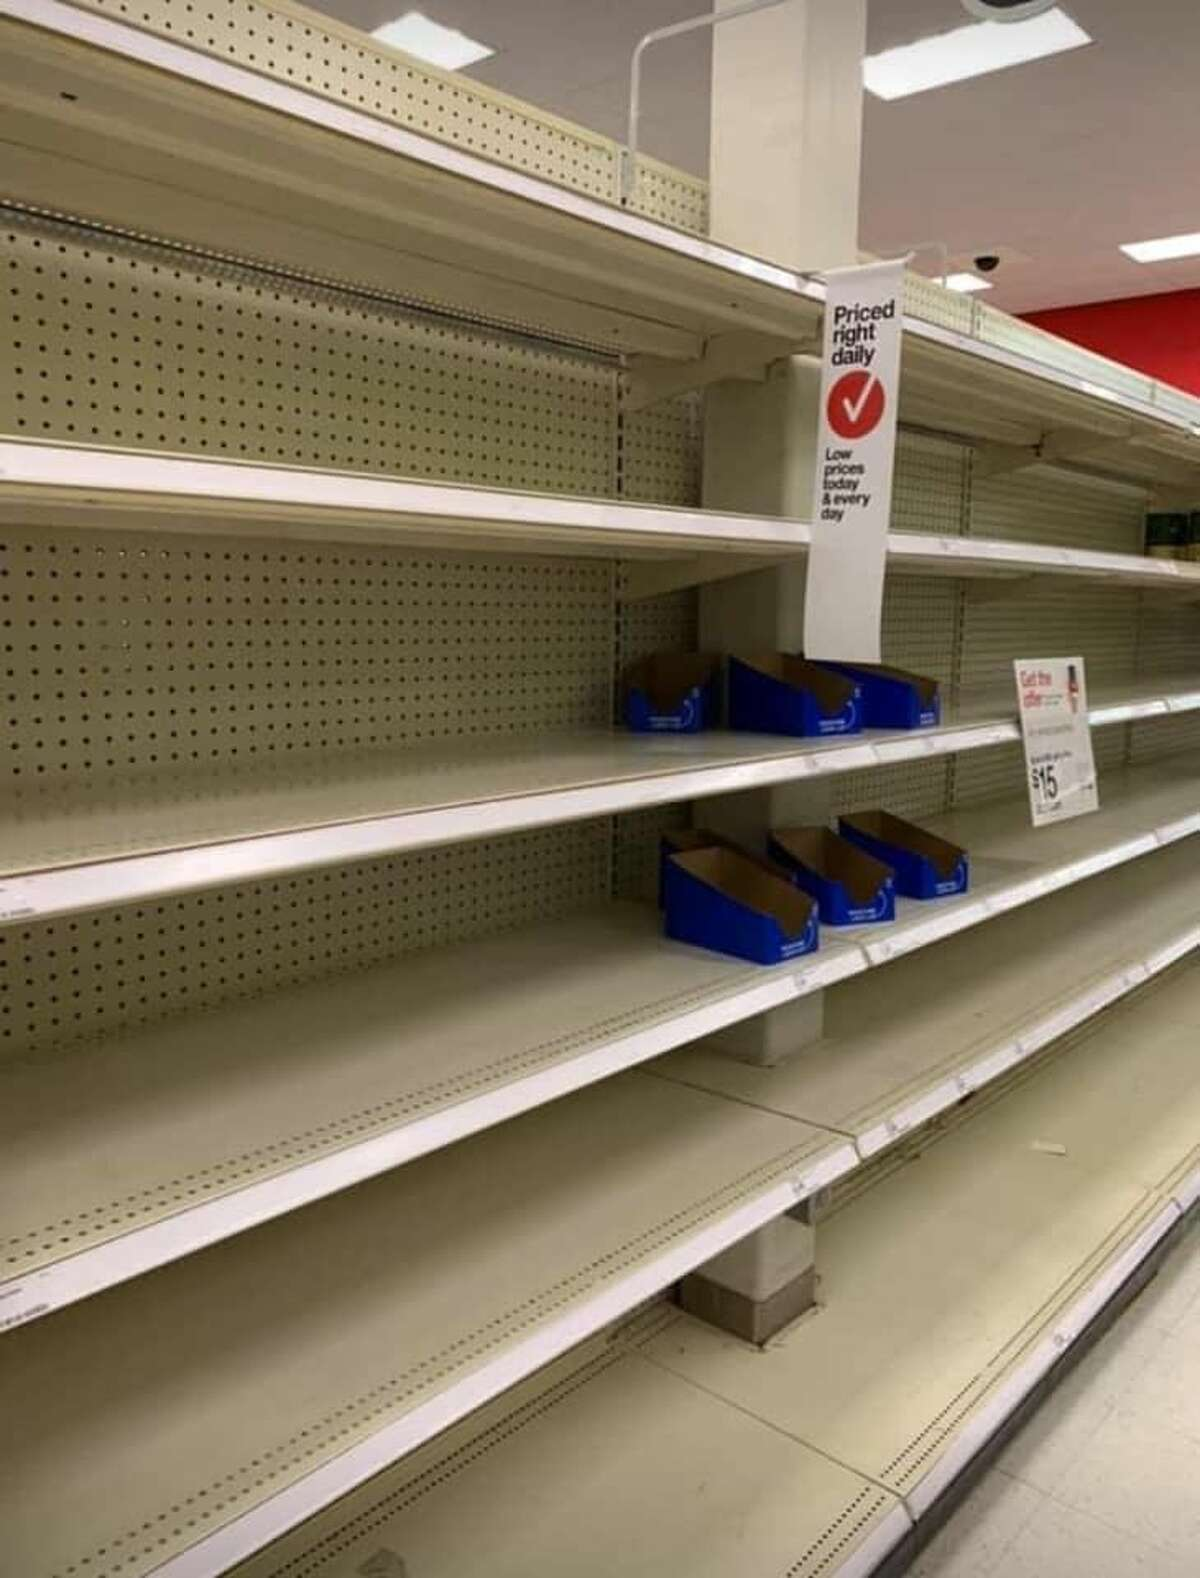 Complete aisles were bare at the Target store in Tukwila, Wash. on March 15, 2020. For a look at some of the empty shelves across the Seattle area, click through the gallery. >>>